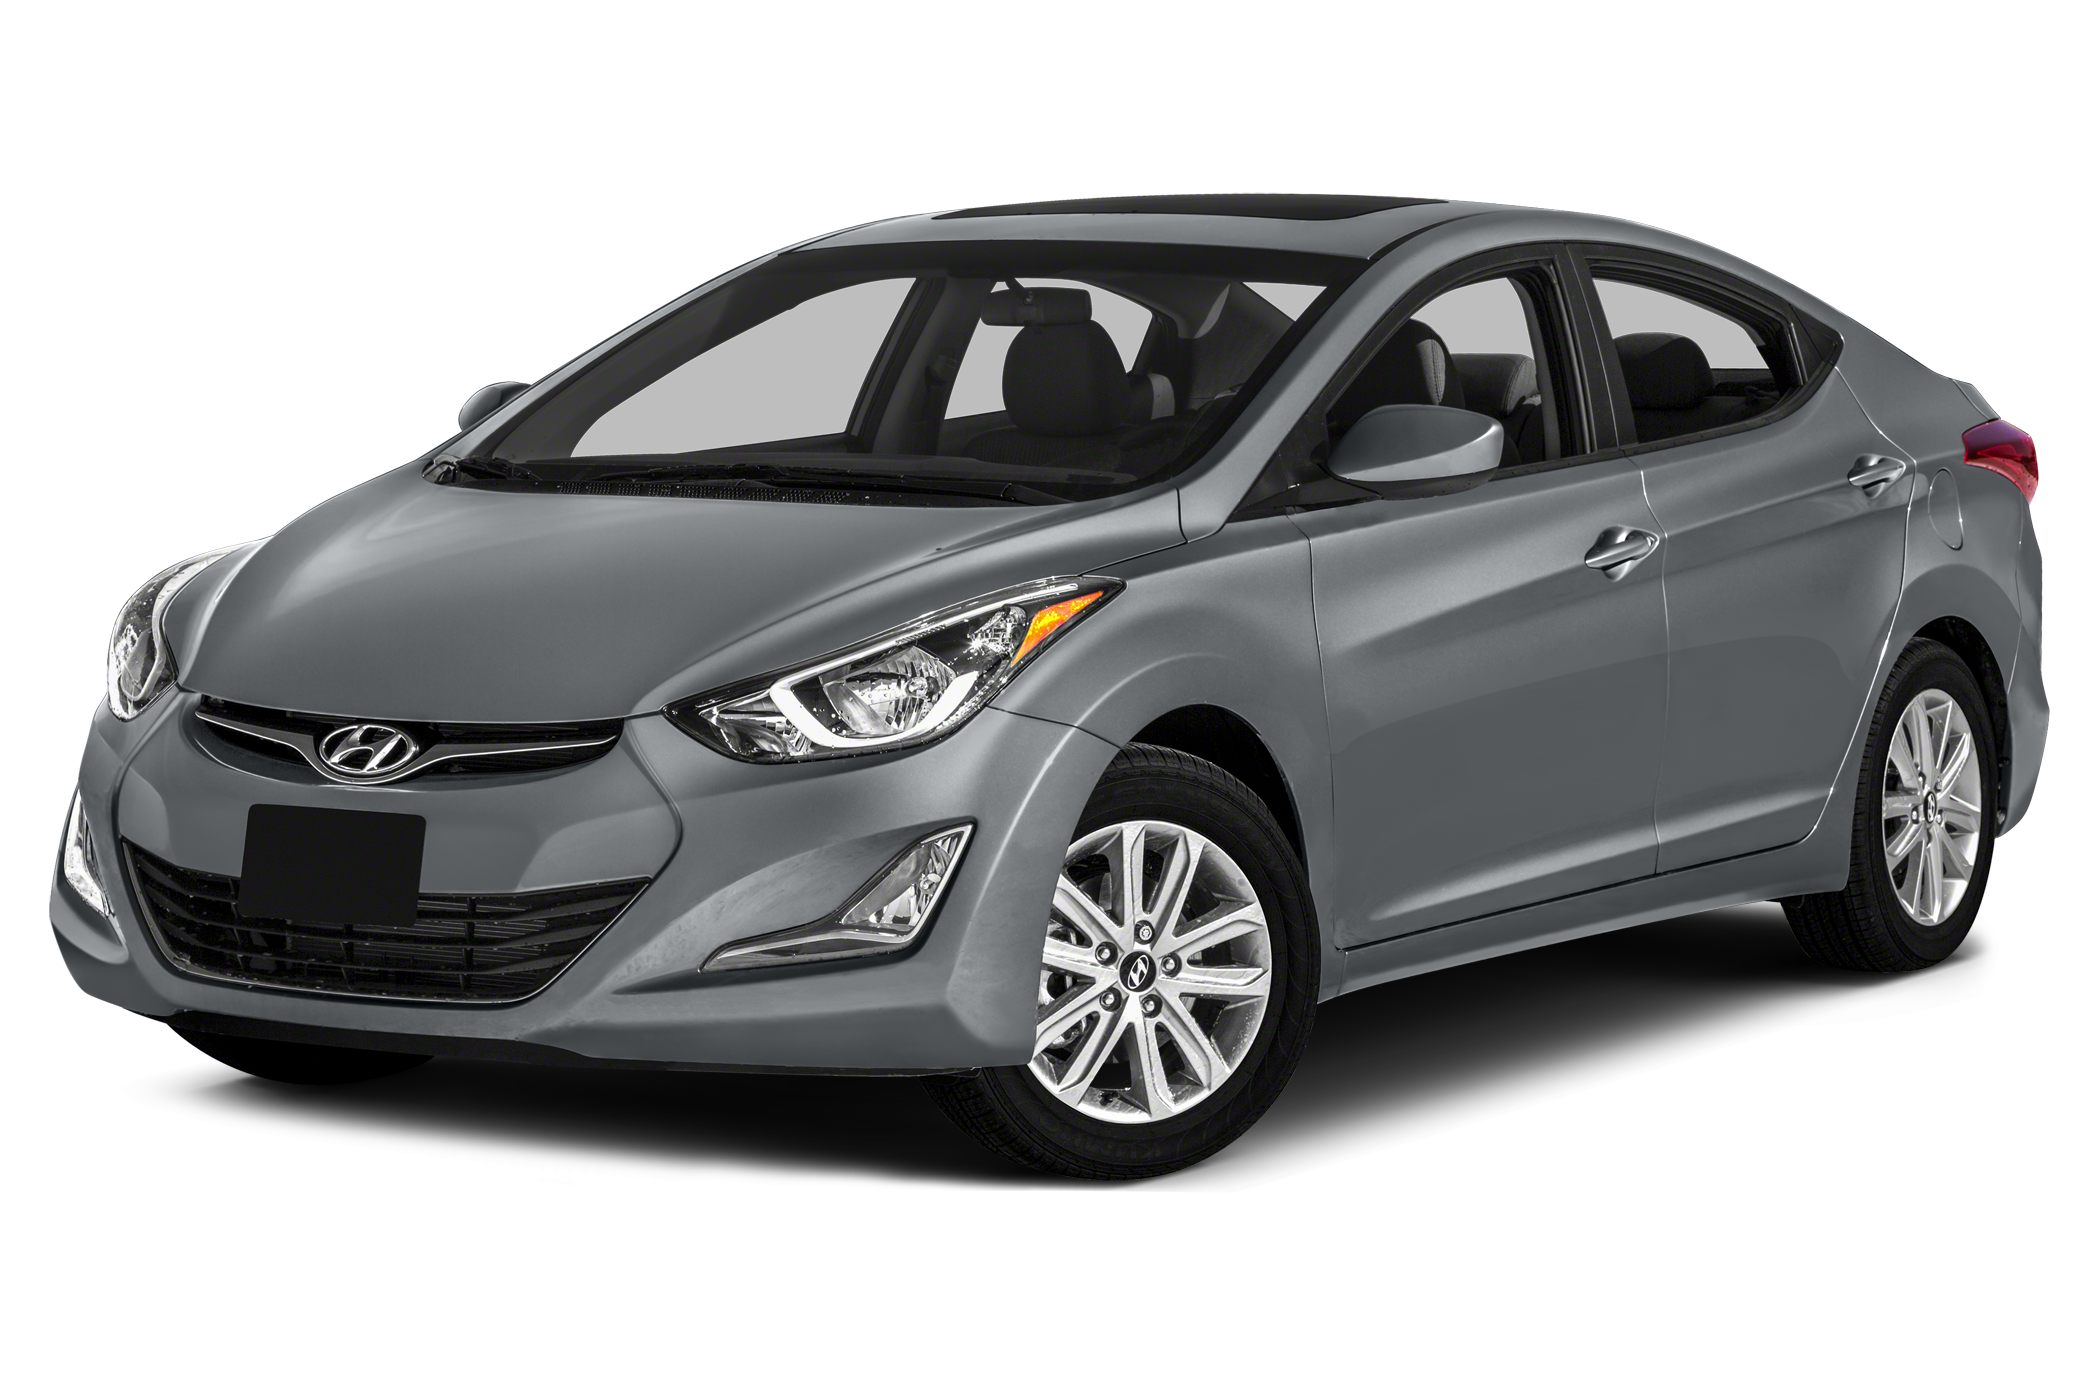 2015 Hyundai Elantra SE Sedan for sale in Scottsdale for $20,260 with 0 miles